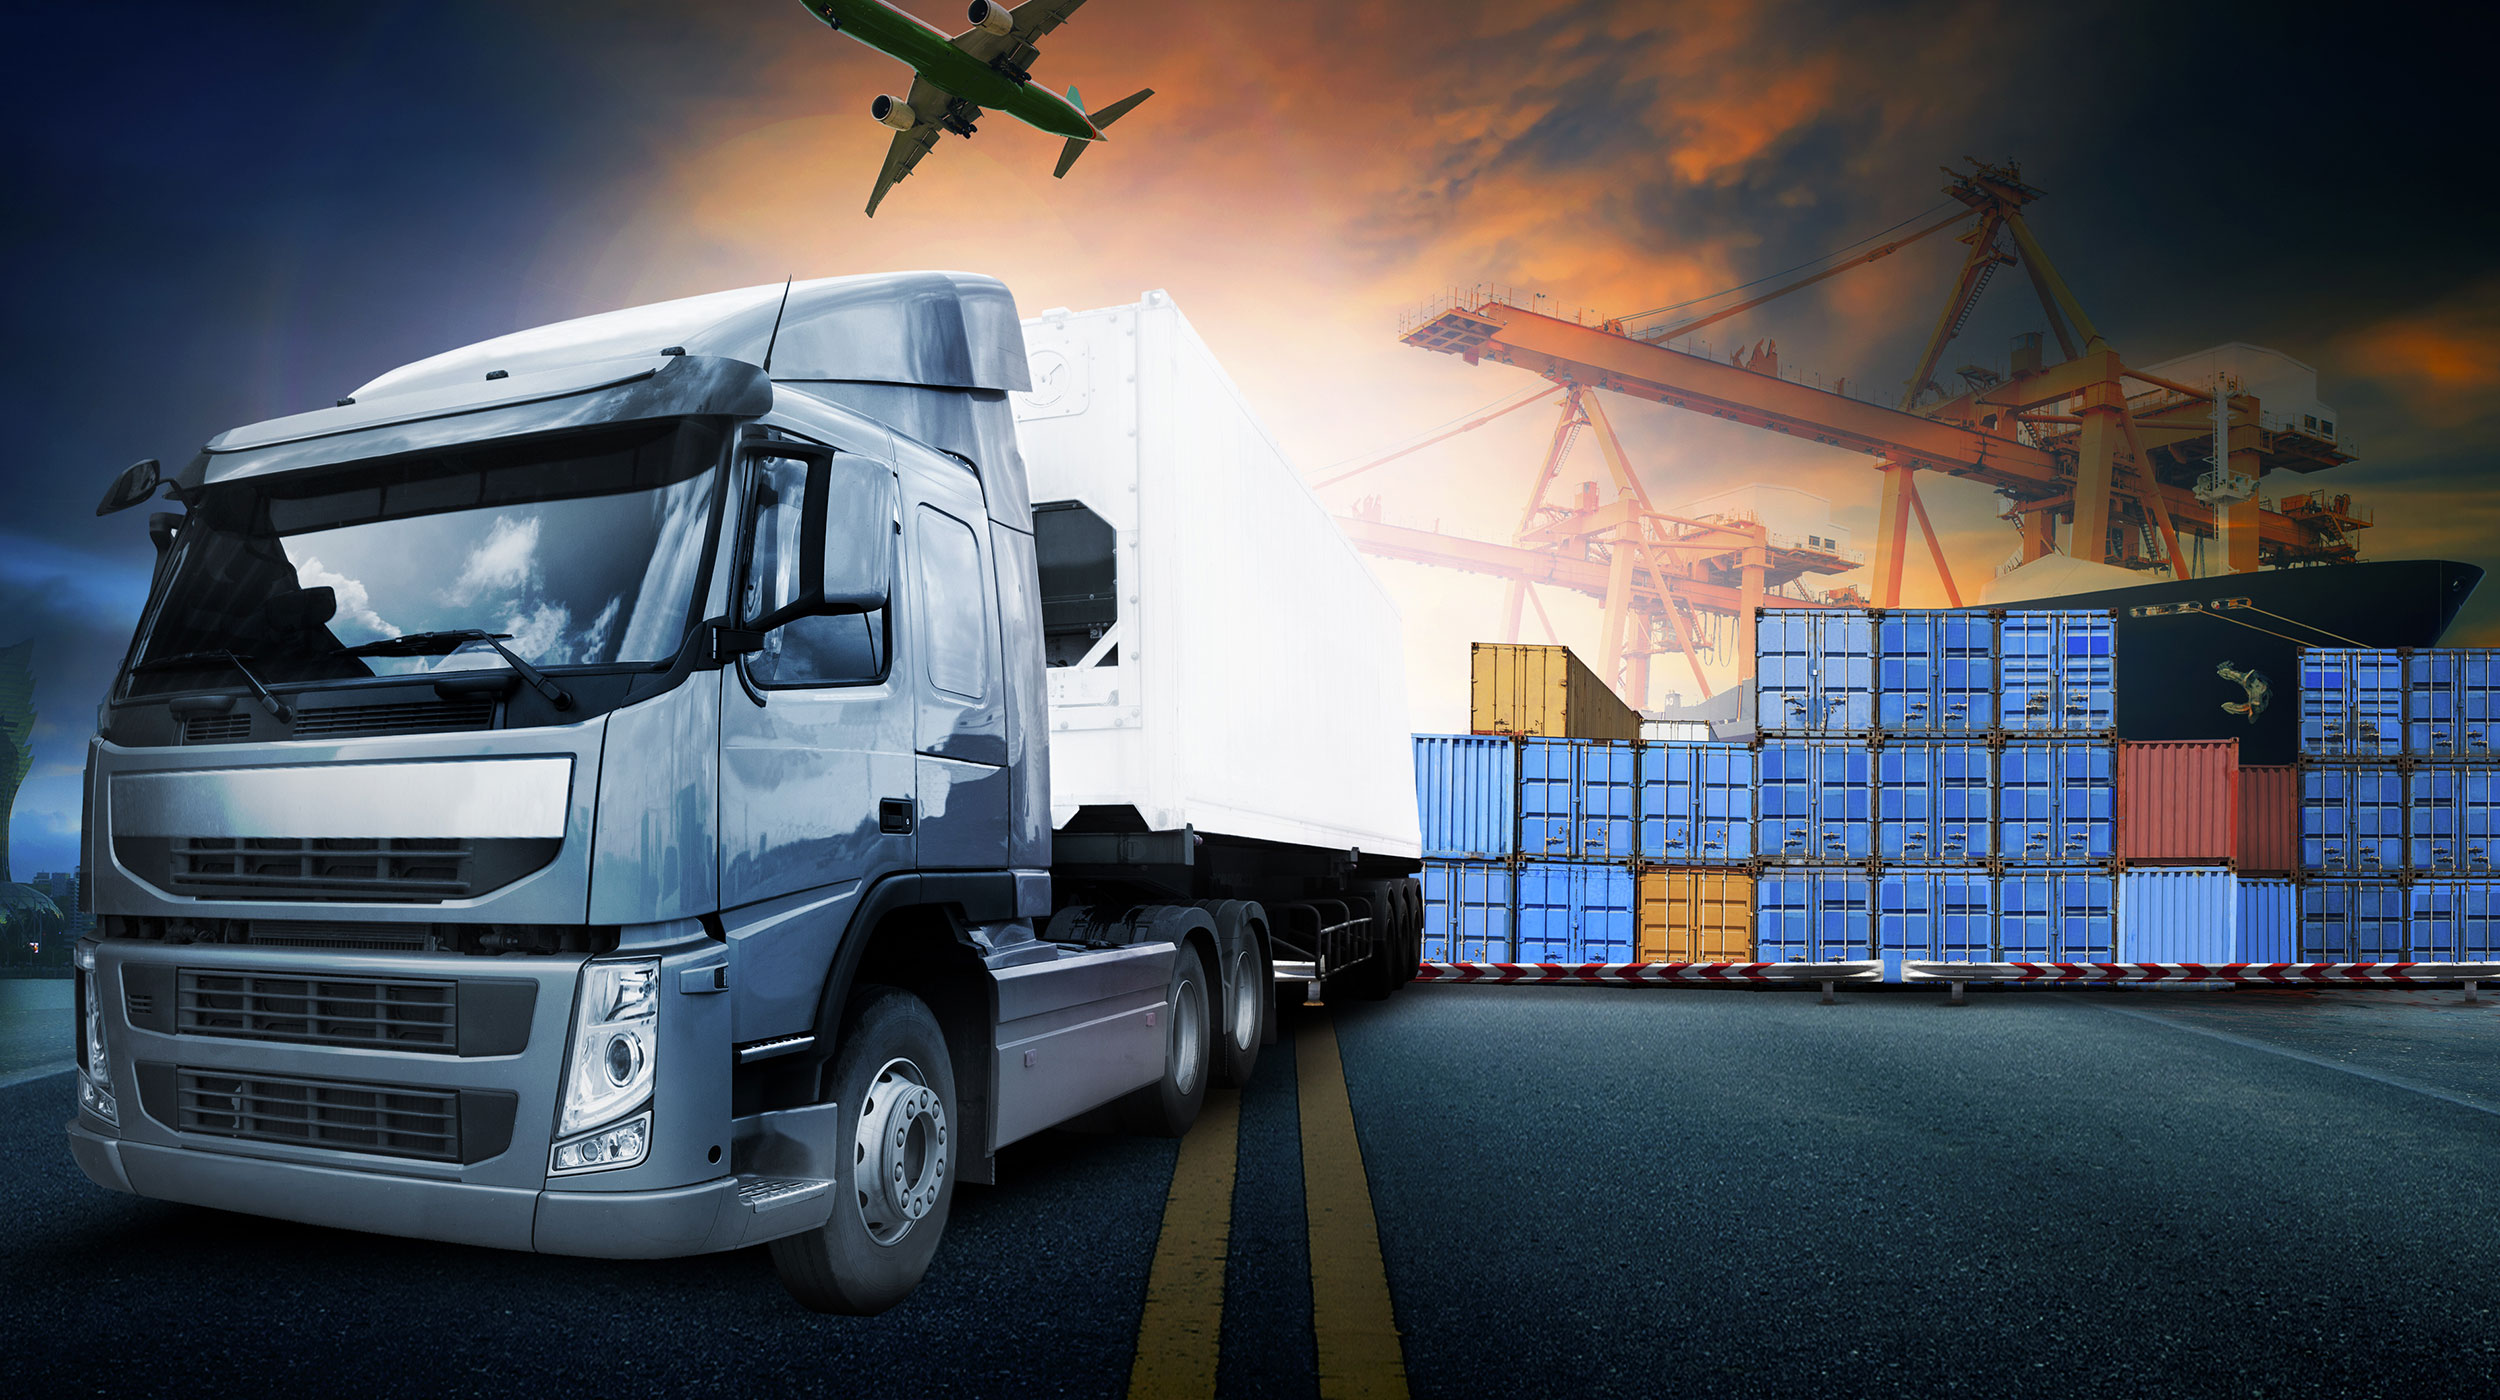 CARTAGE mediation buying, selling materials and goods